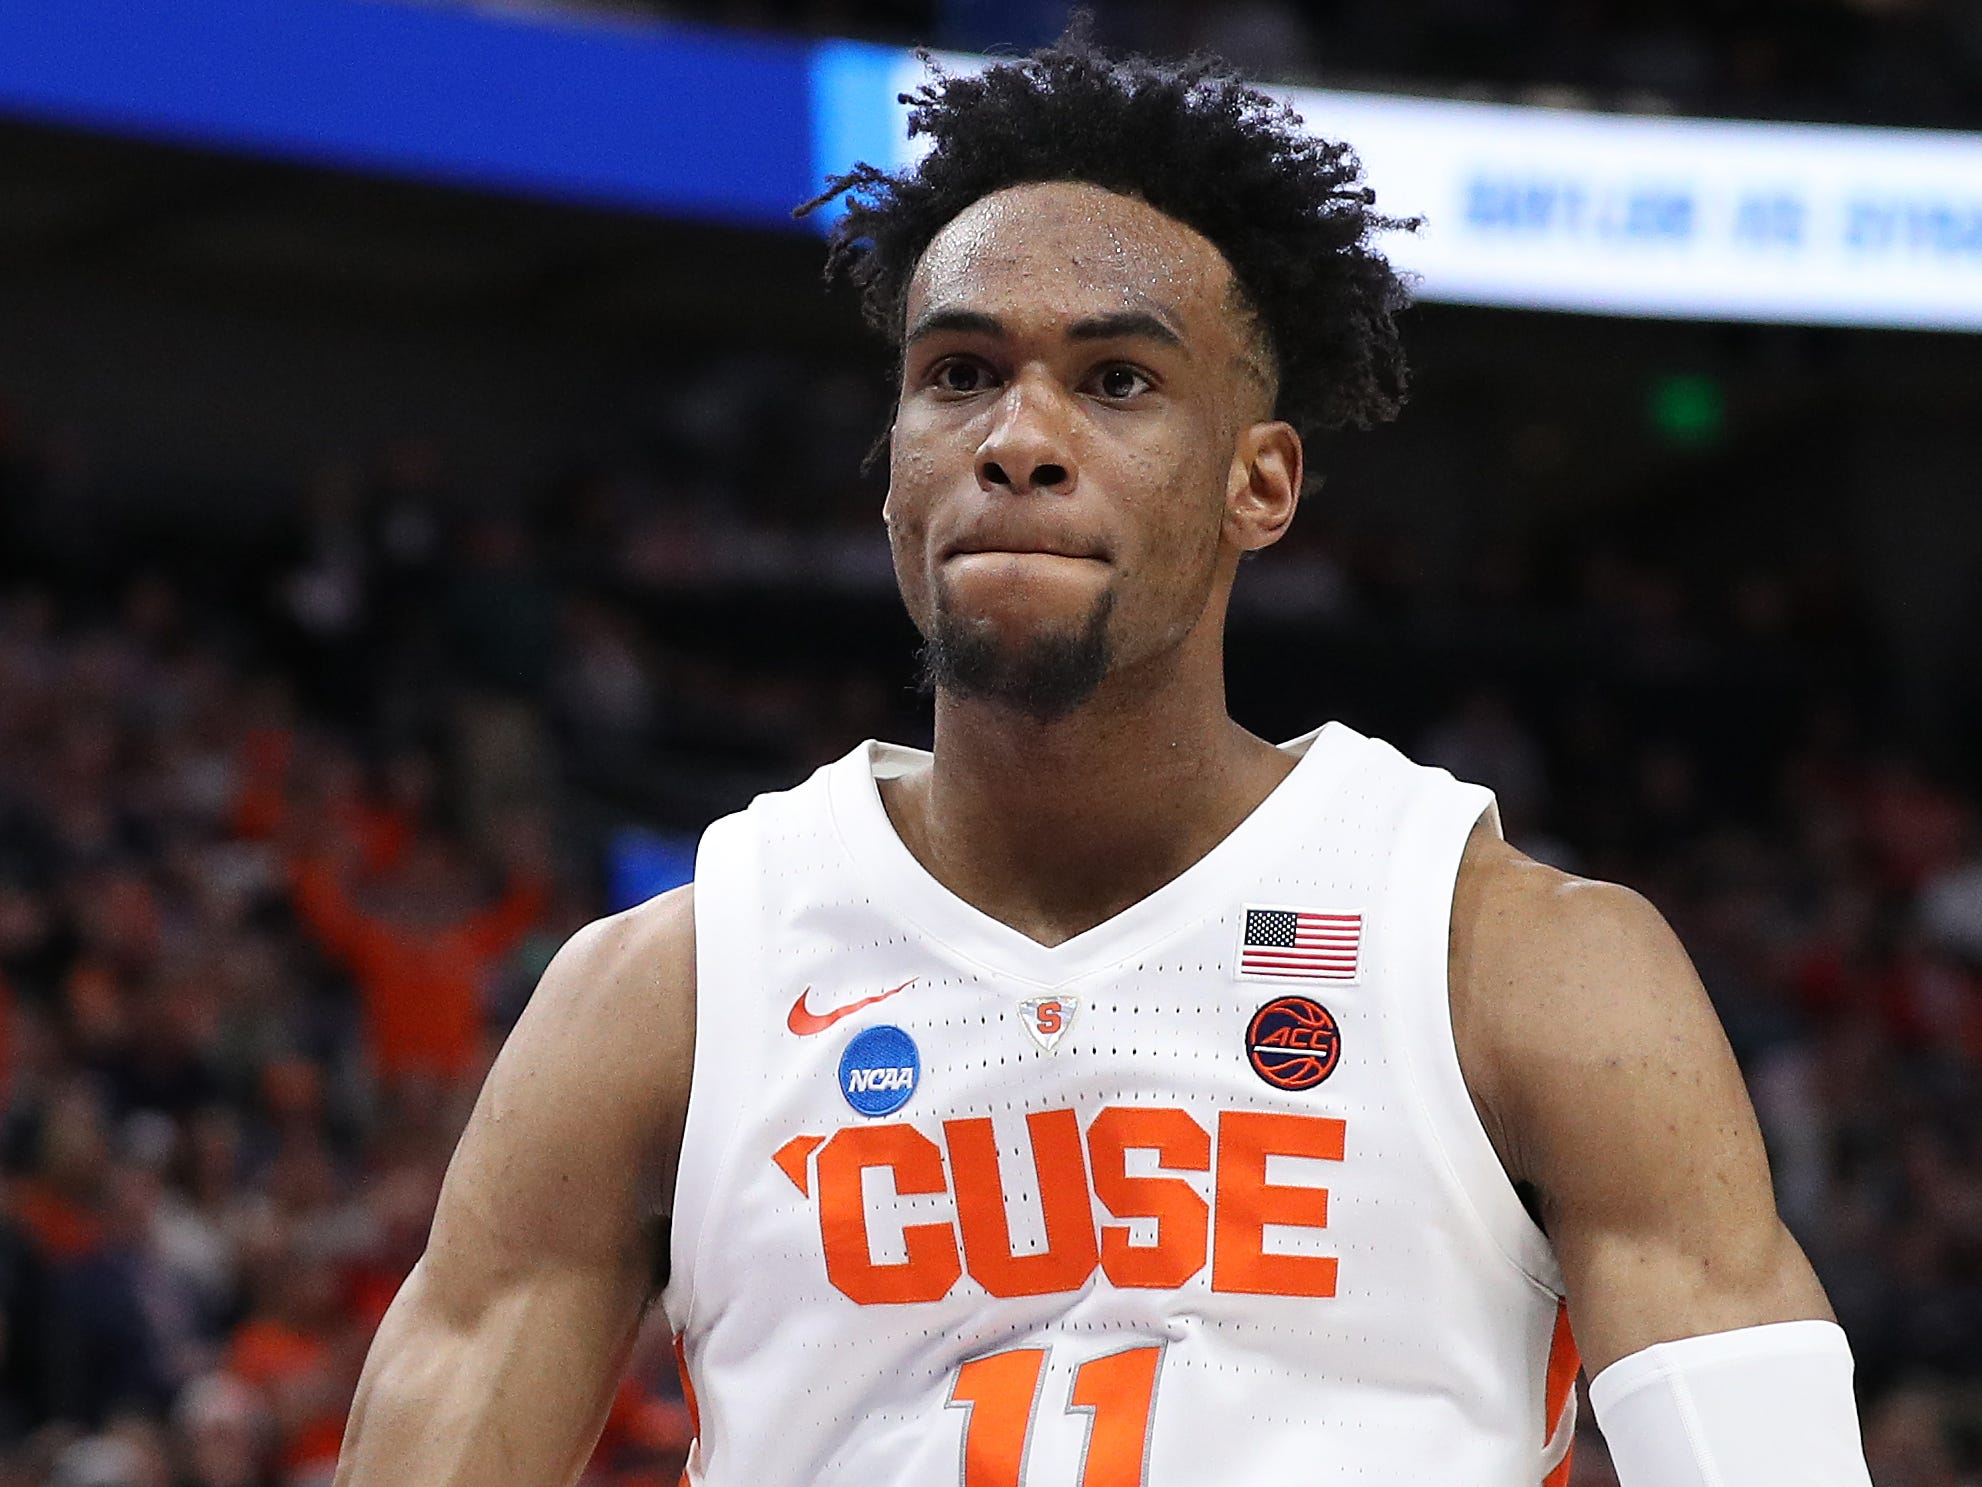 Oshae Brissett of the Syracuse Orange reacts as they play against the Baylor Bears on March 21, 2019 in Salt Lake City, Utah.